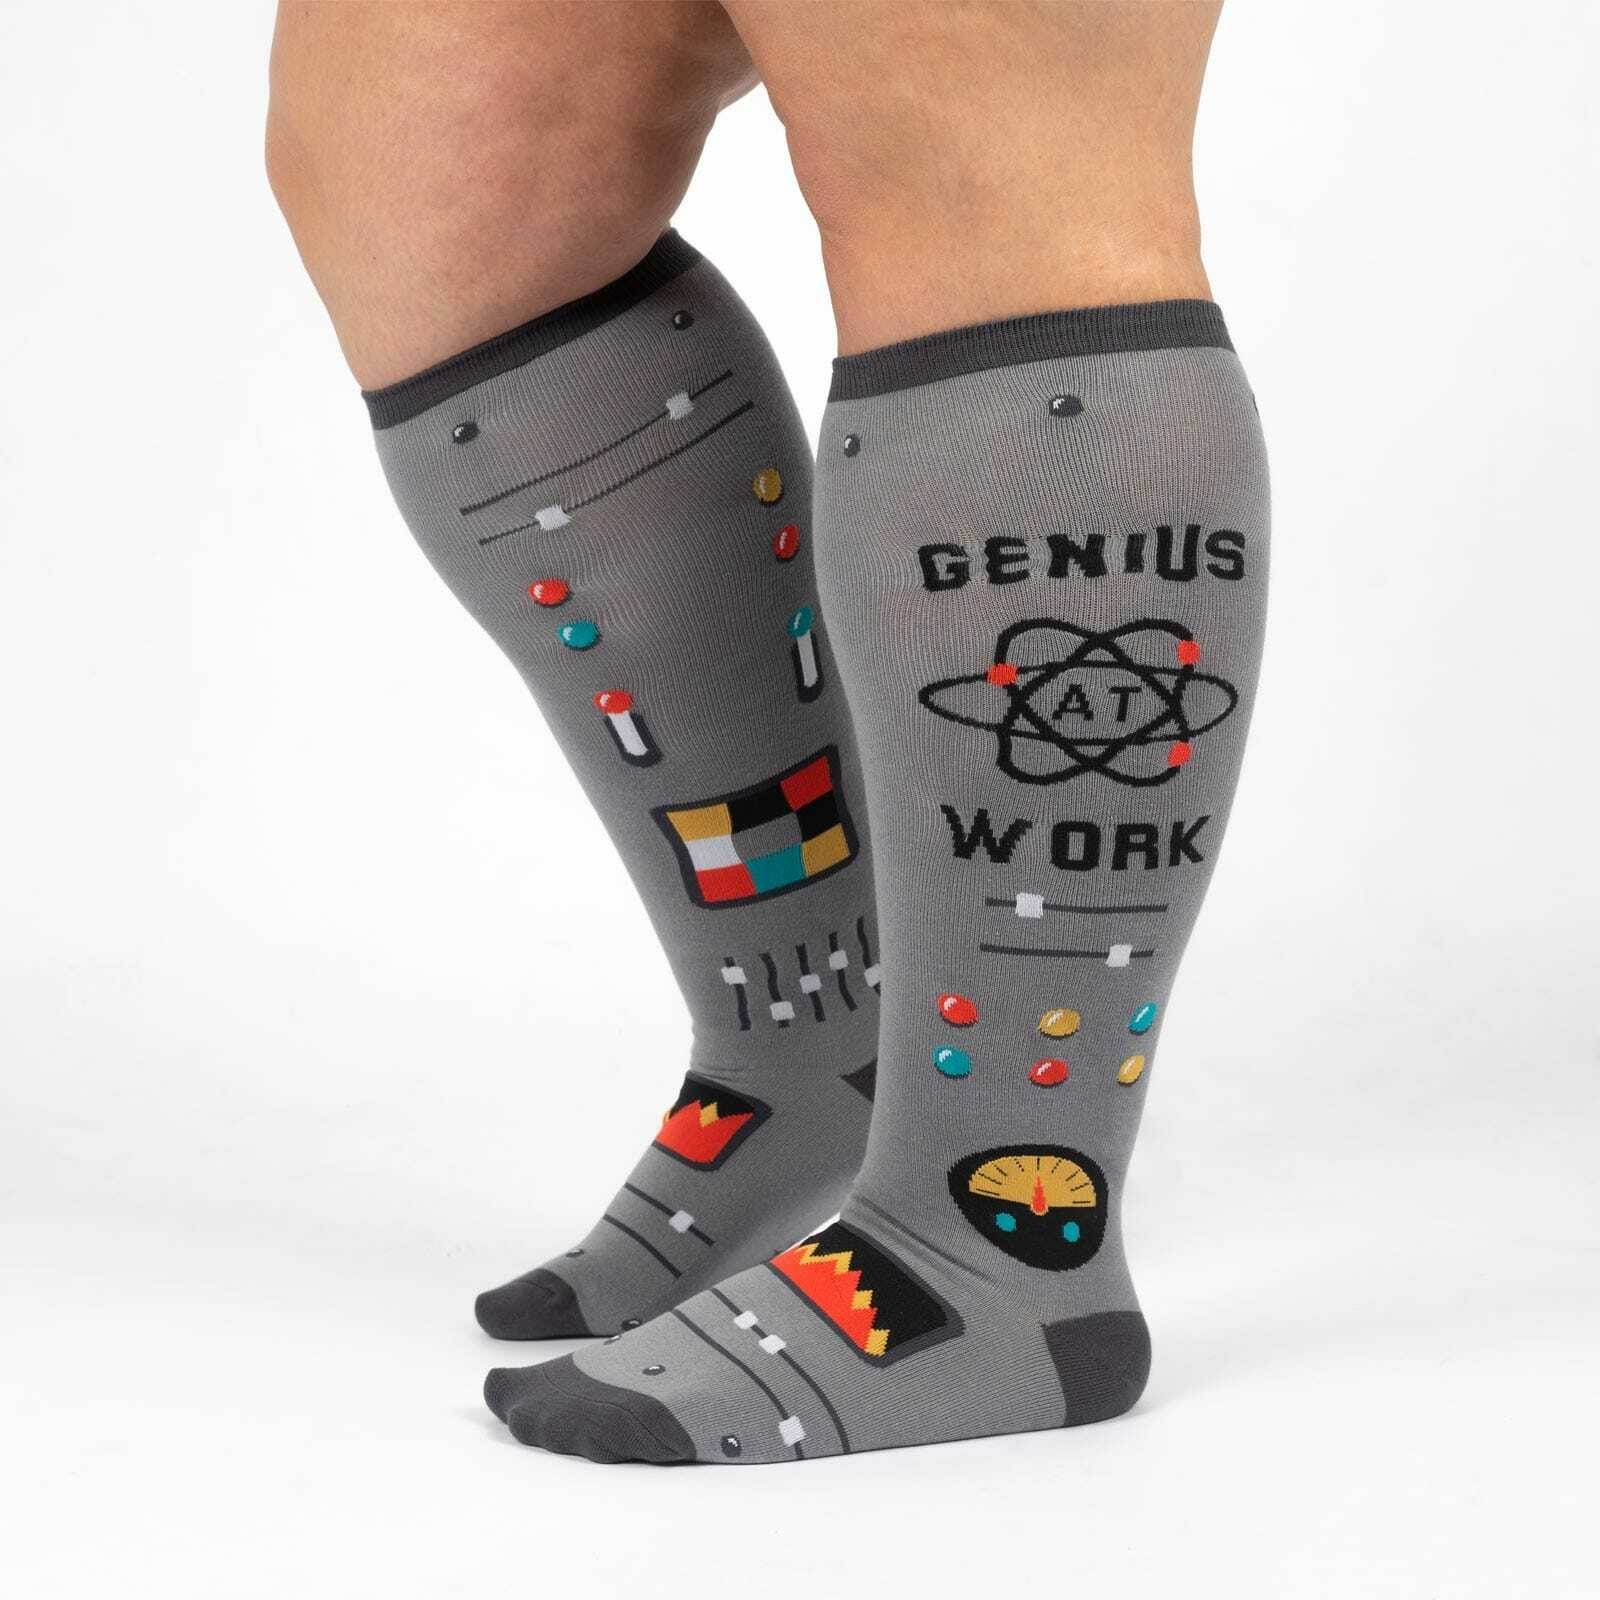 Genius At Work - Science Math Wide Calf Socks Grey - Unisex in Grey